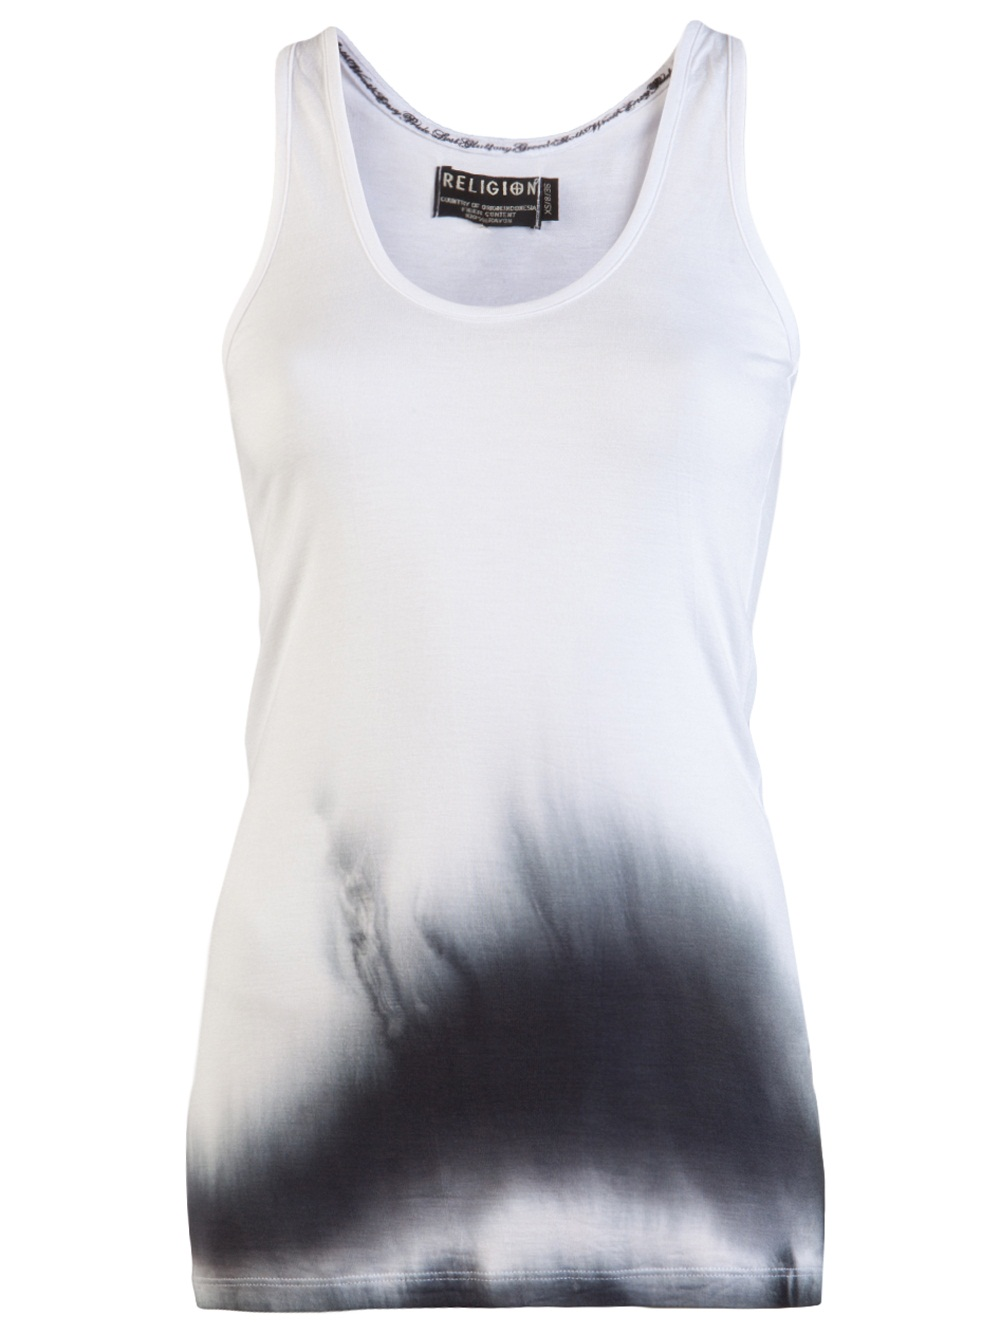 Religion Tie Dye Tank - Anastasia Boutique - farfetch.com_files.jpg